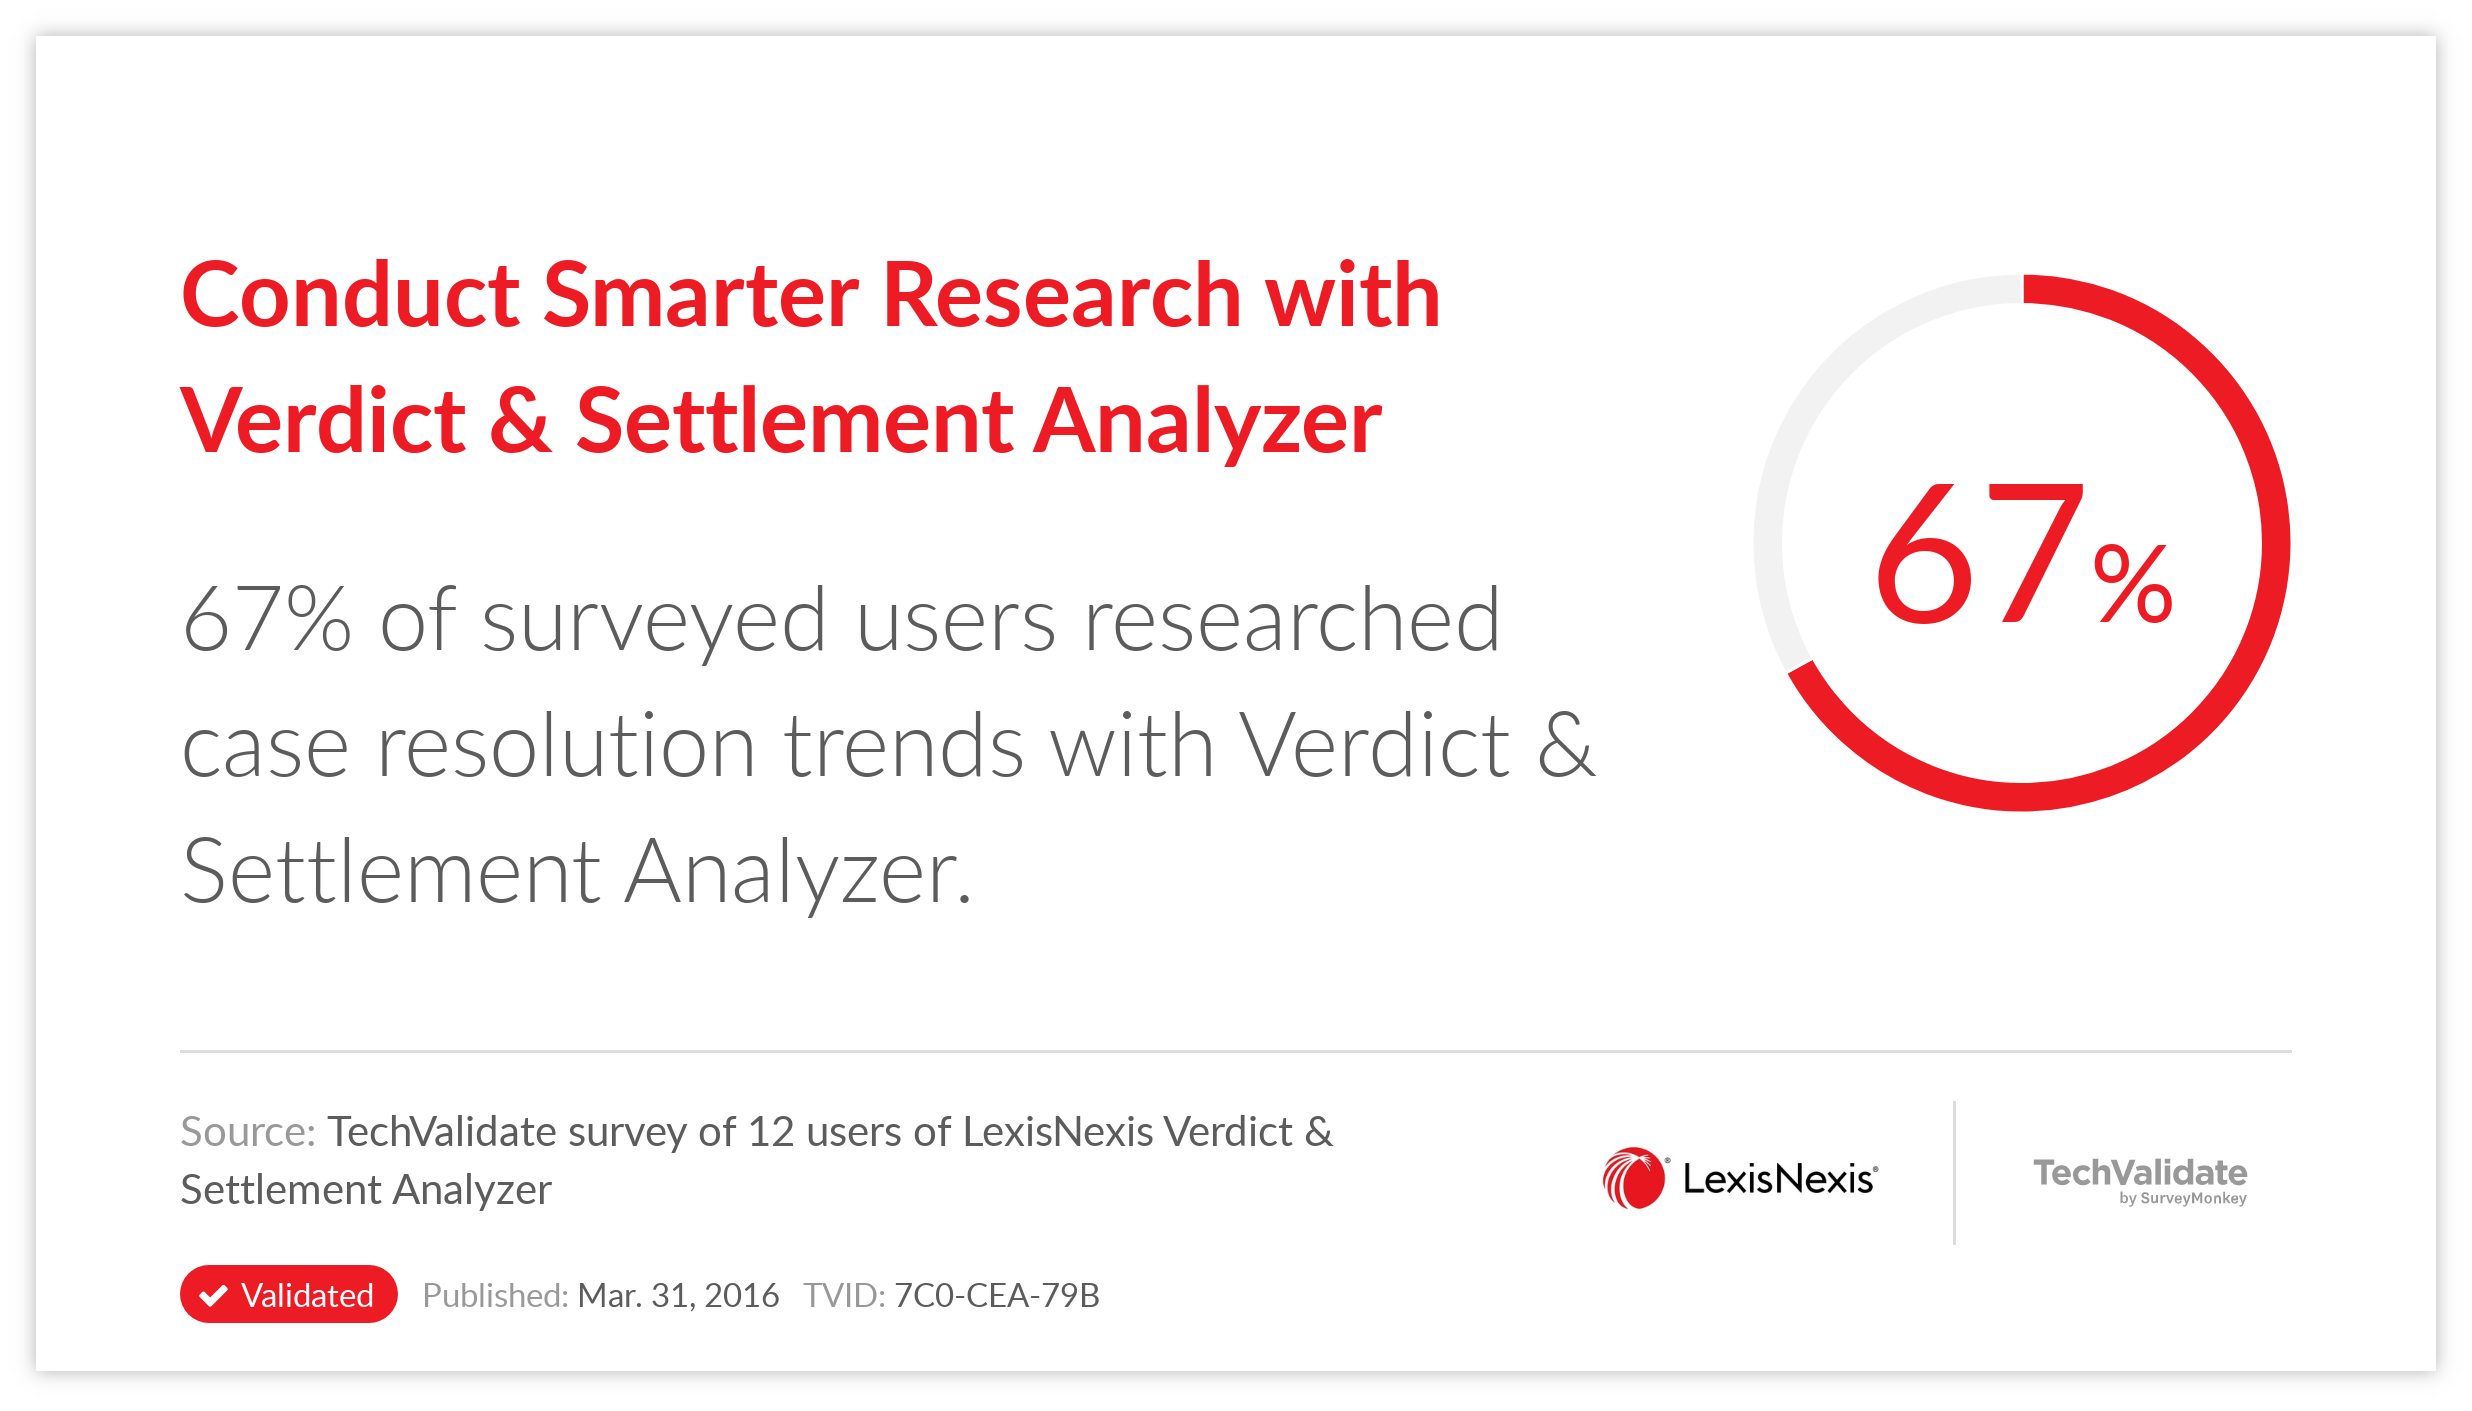 Conduct Smarter Research with Verdict & Settlement Analyzer